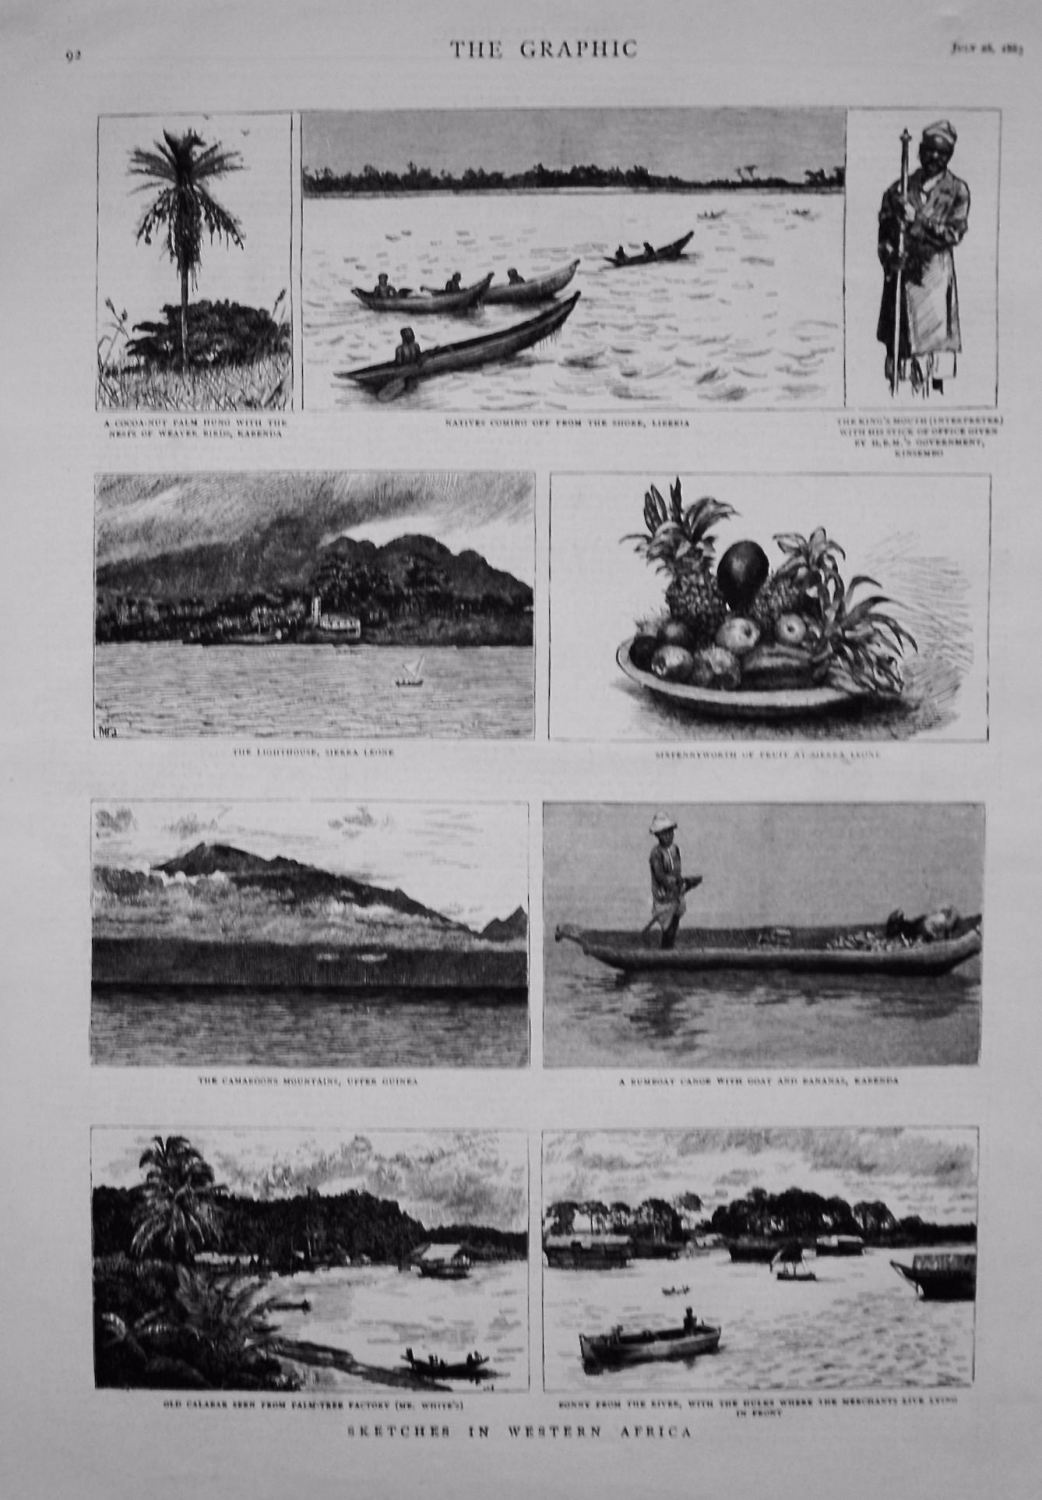 Sketches in Western Africa. 1883.